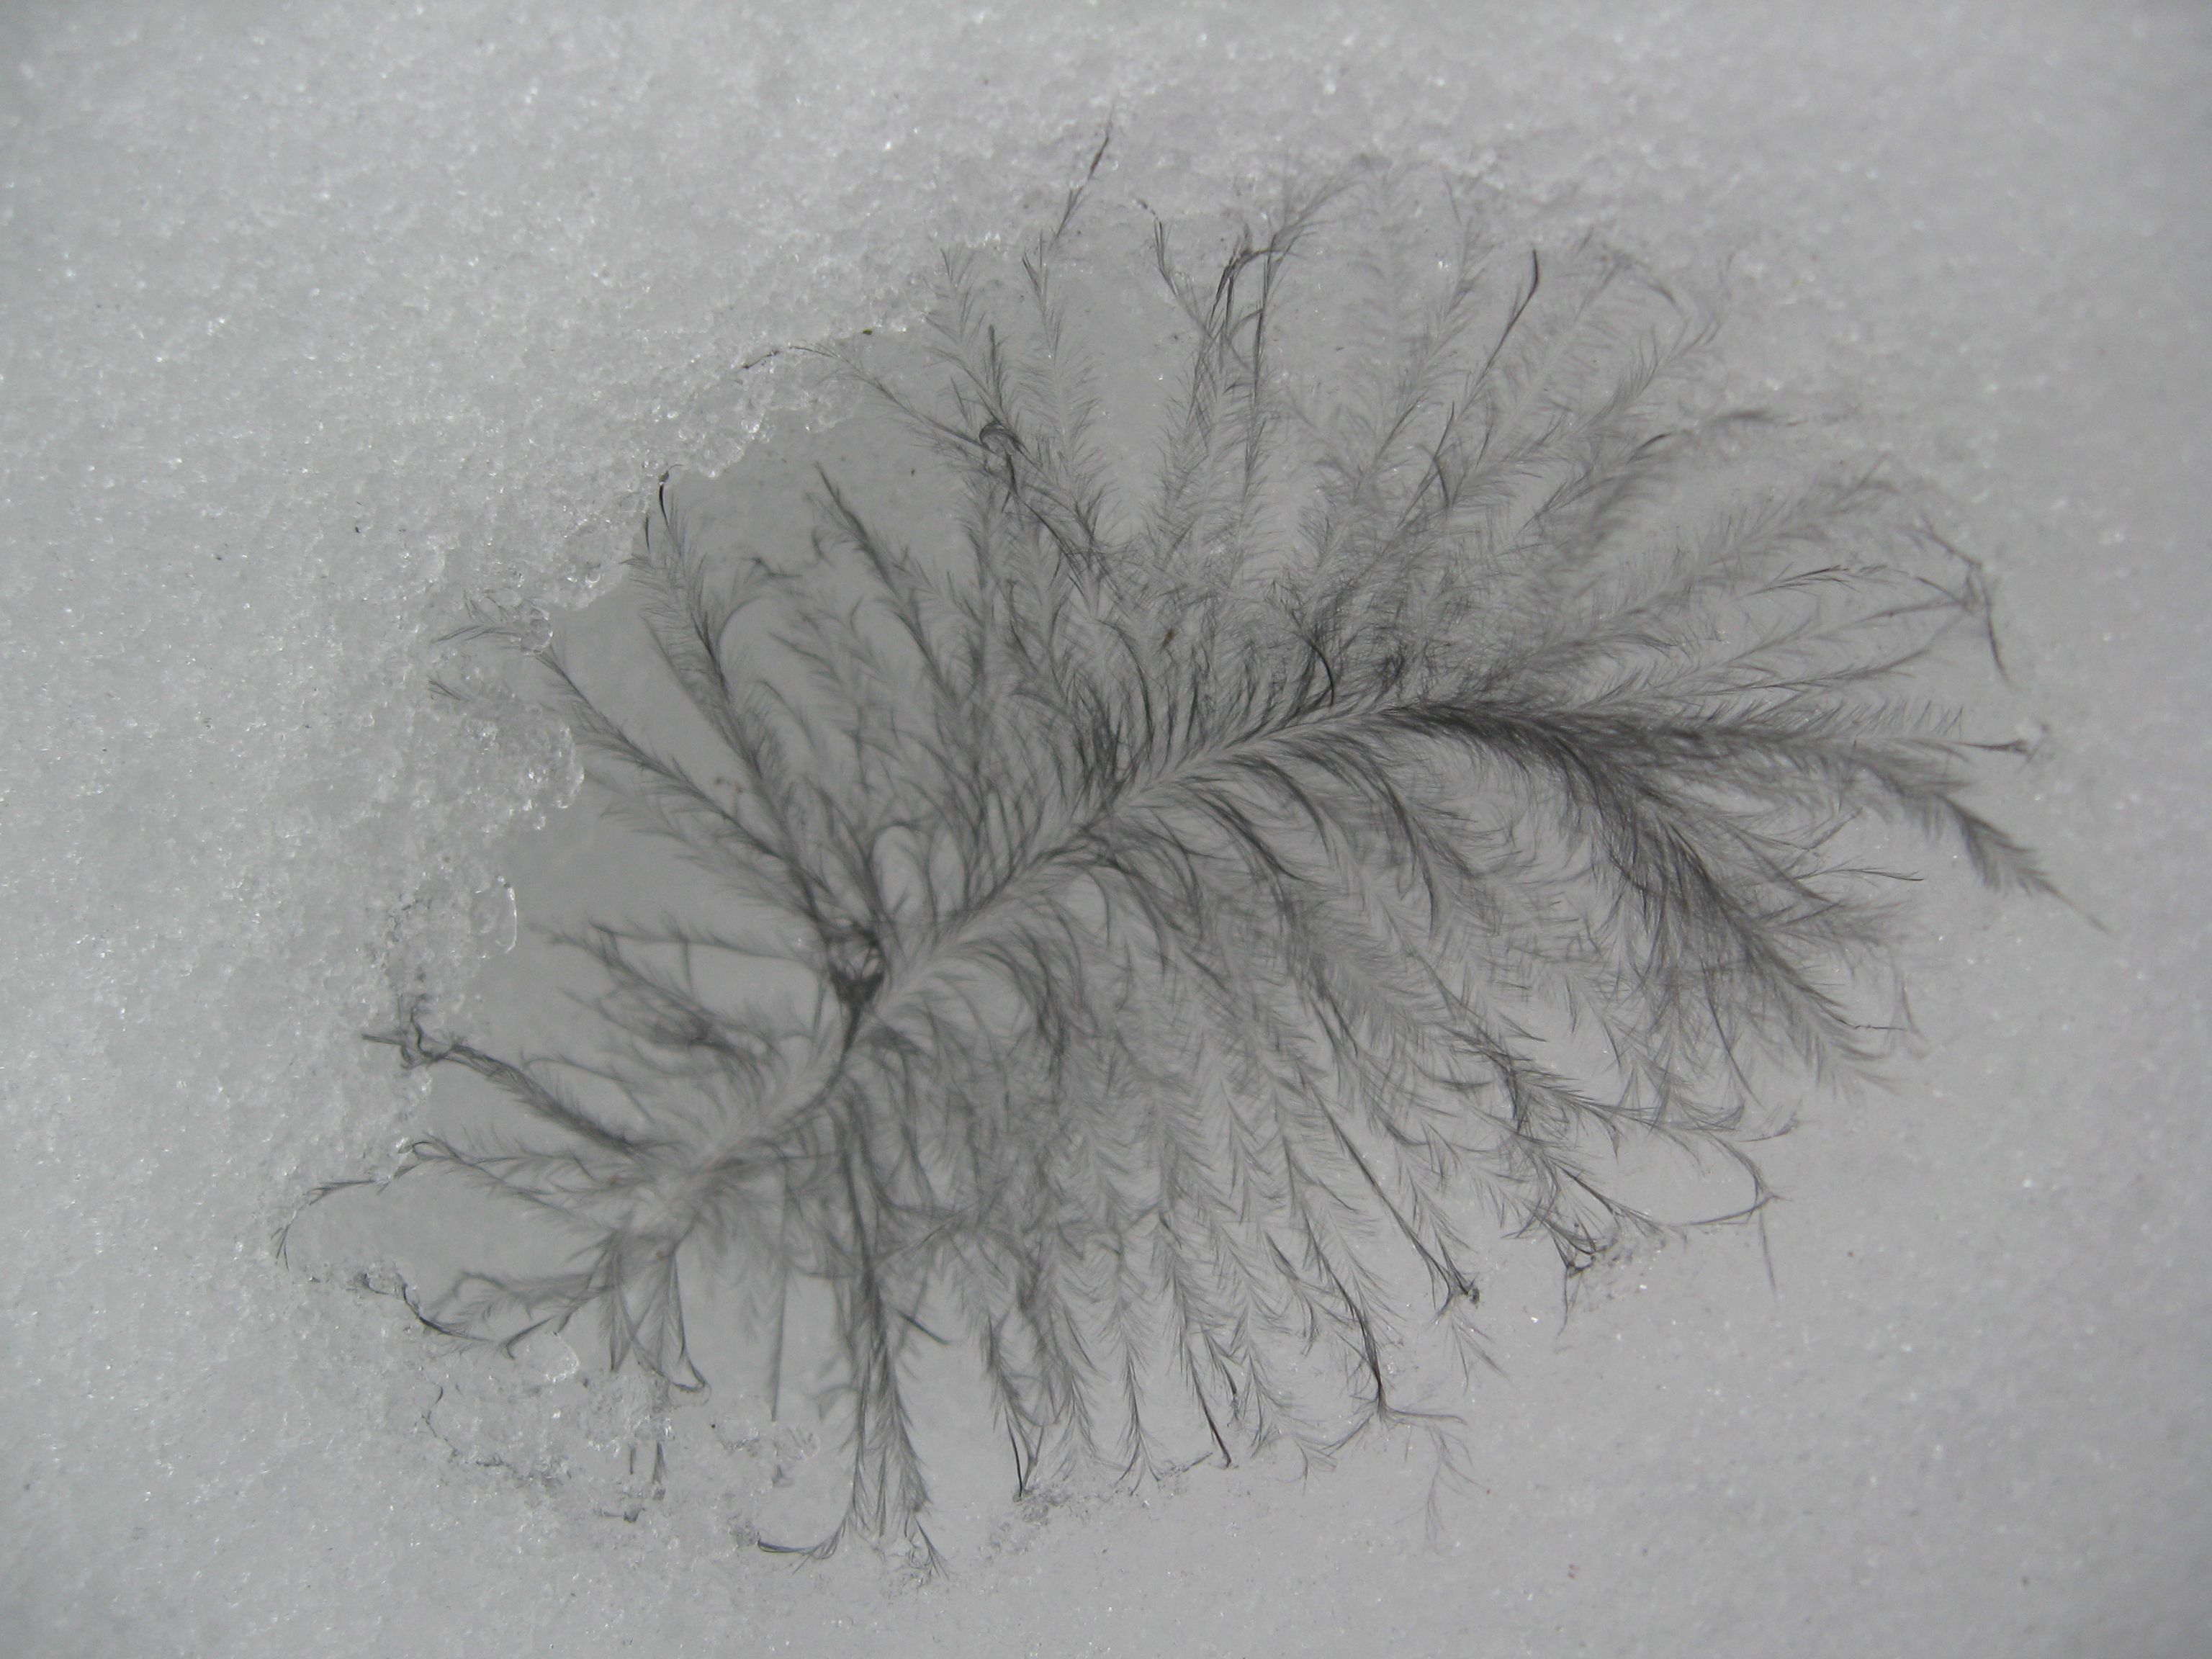 A bit of feather-down, fallen into snow at Dyken Pond.